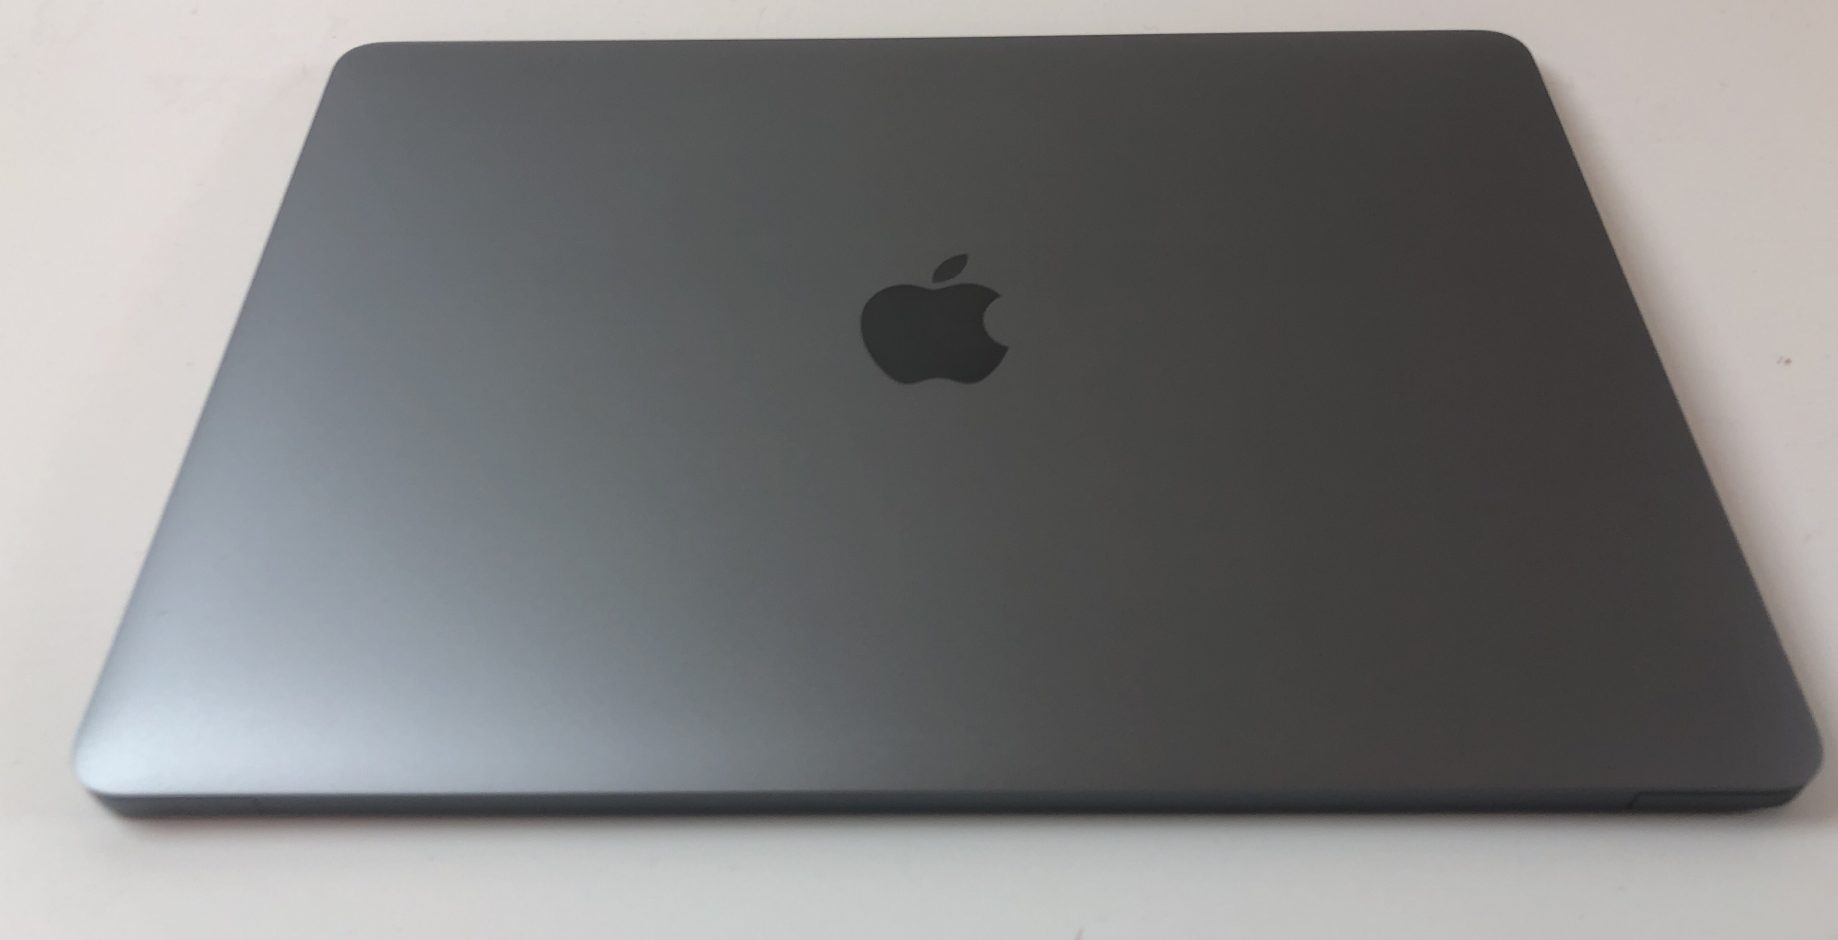 "MacBook Pro 13"" 2TBT Mid 2017 (Intel Core i5 2.3 GHz 8 GB RAM 128 GB SSD), Space Gray, Intel Core i5 2.3 GHz, 8 GB RAM, 128 GB SSD, bild 2"